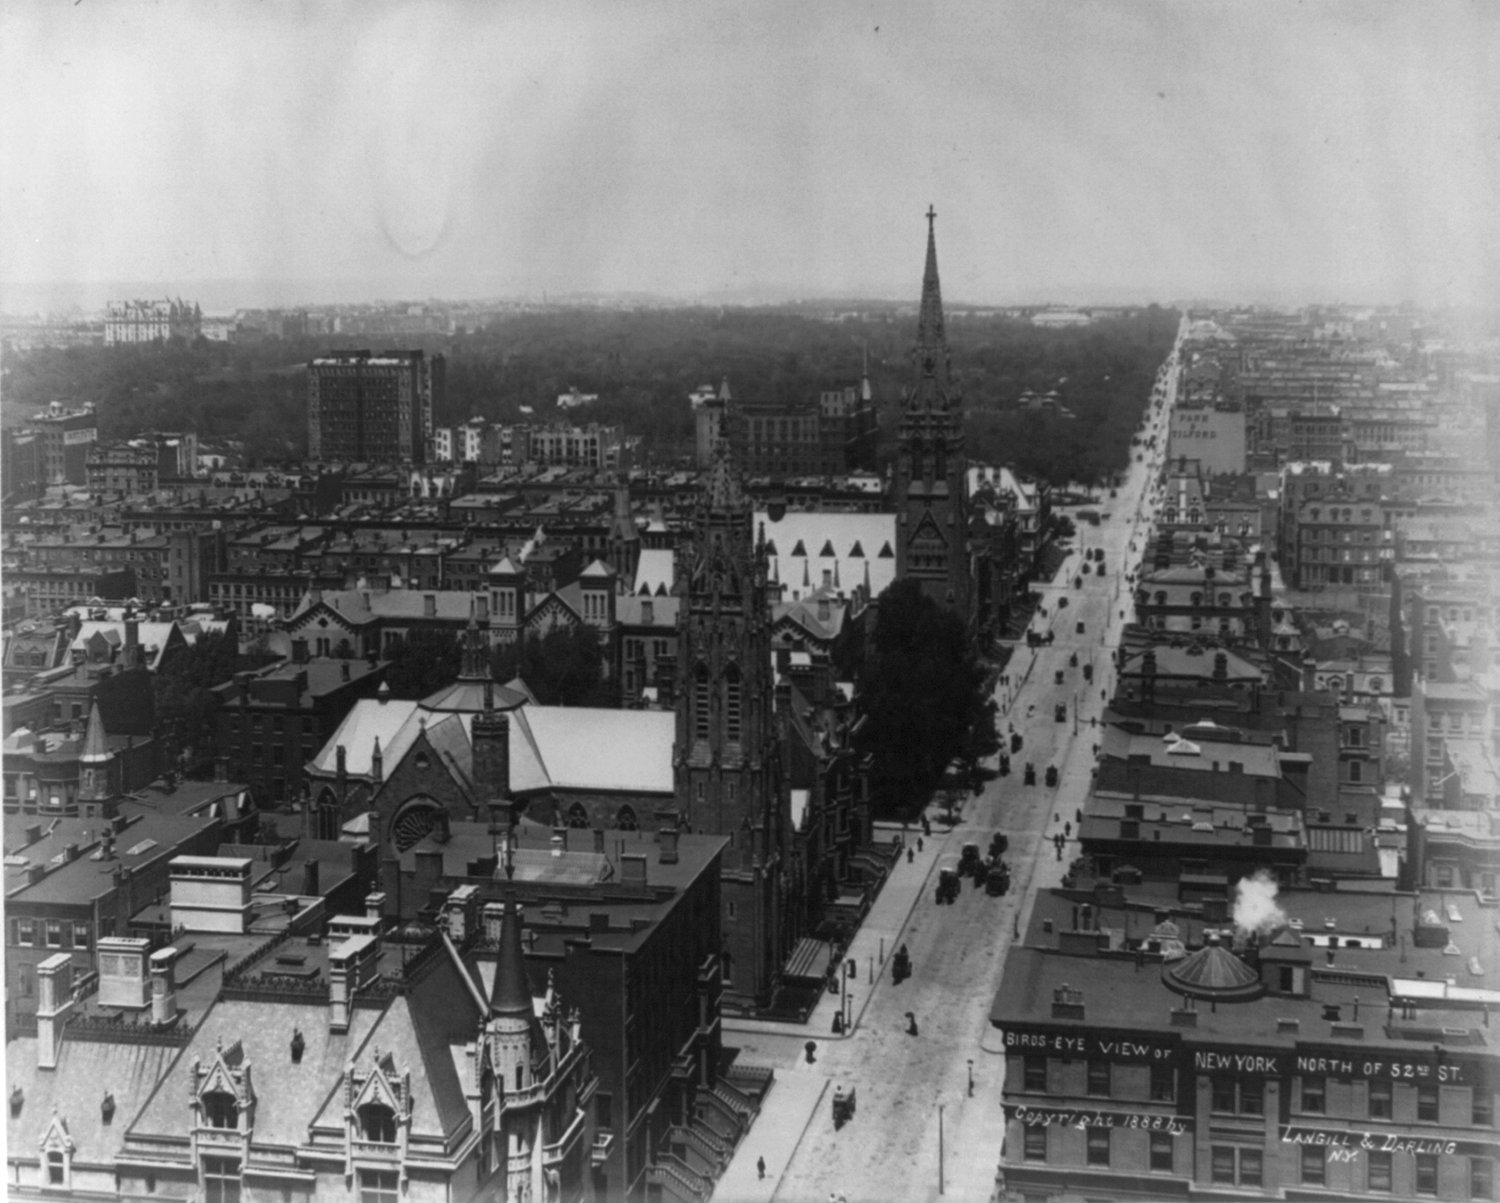 Old New York in Photos #6 - Birdseye View of Fifth Avenue and Central Park 1888